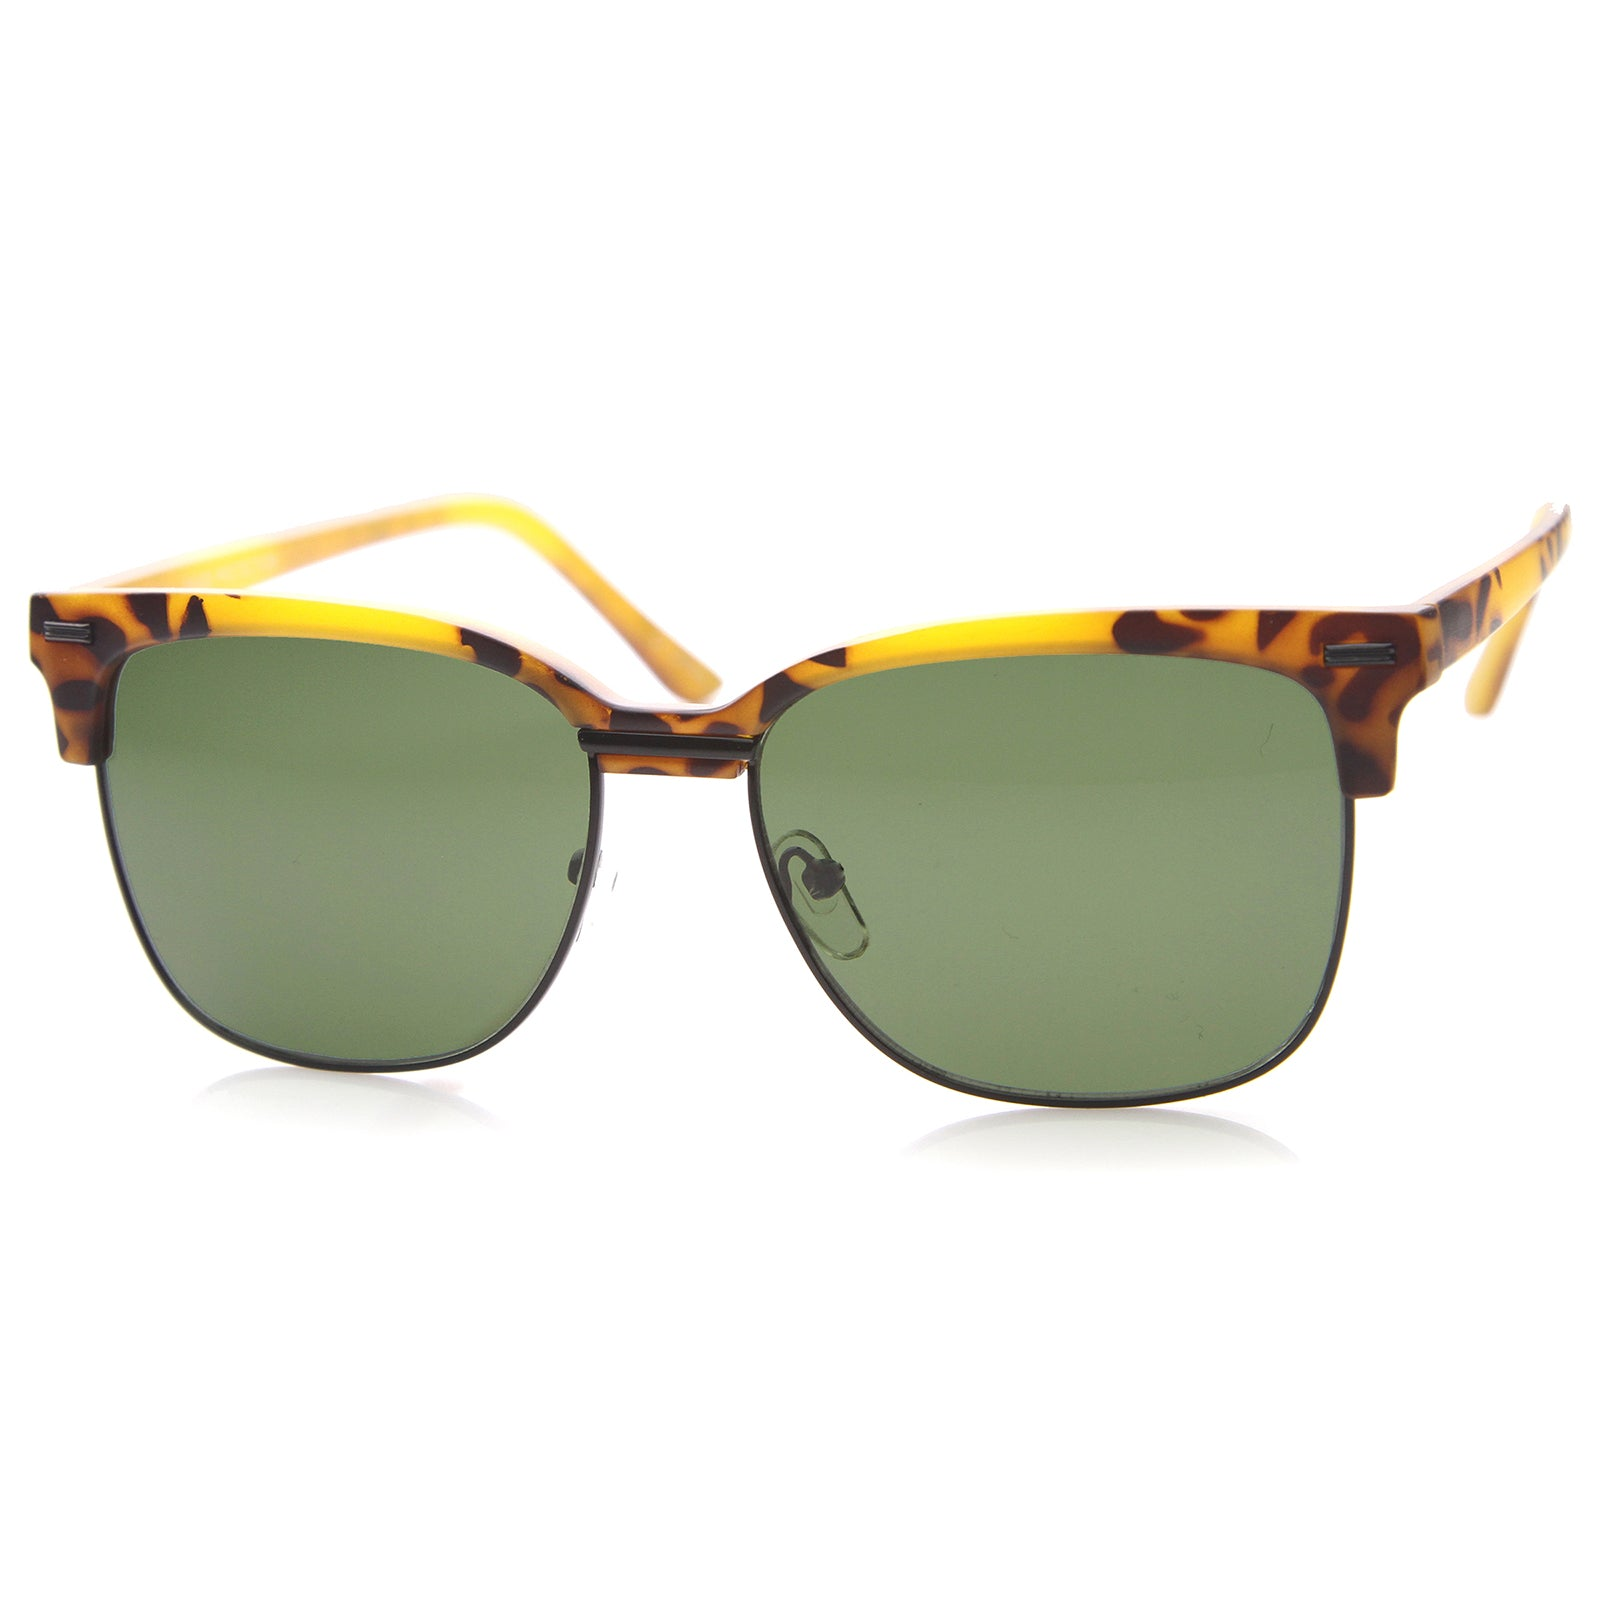 Tortoise-Black / Green